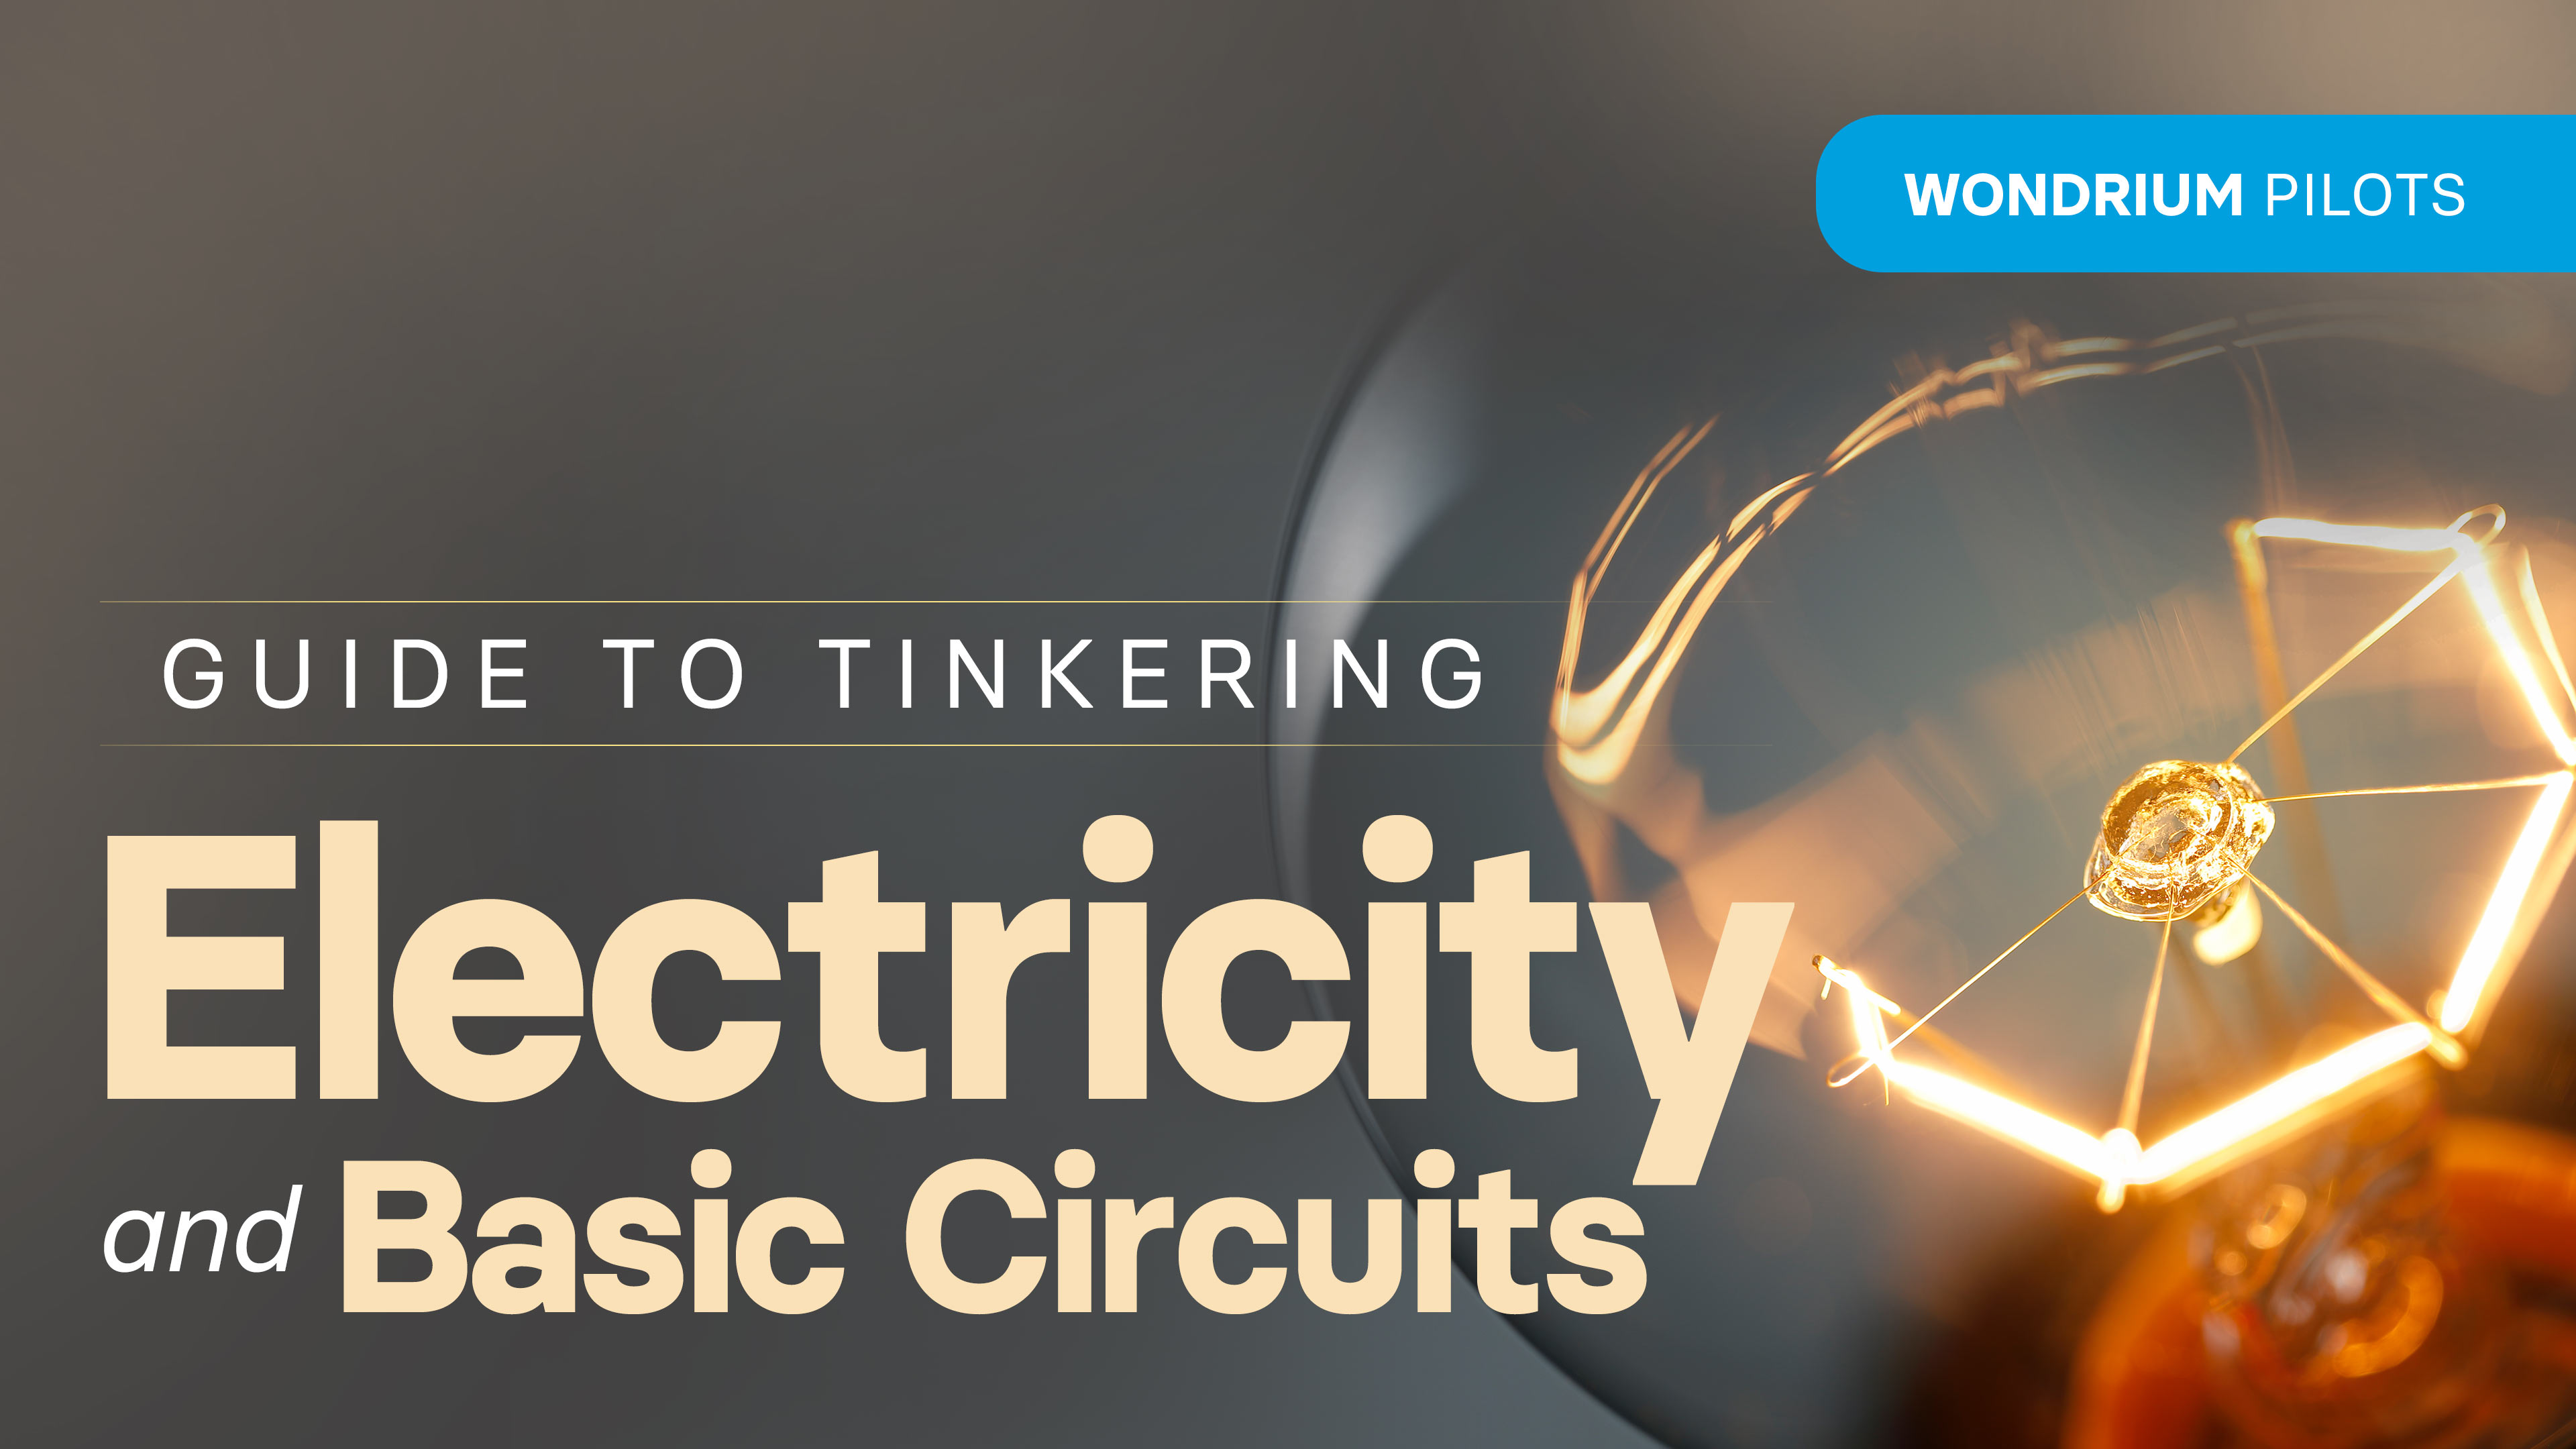 Guide to Tinkering: Electricity and Basic Circuits